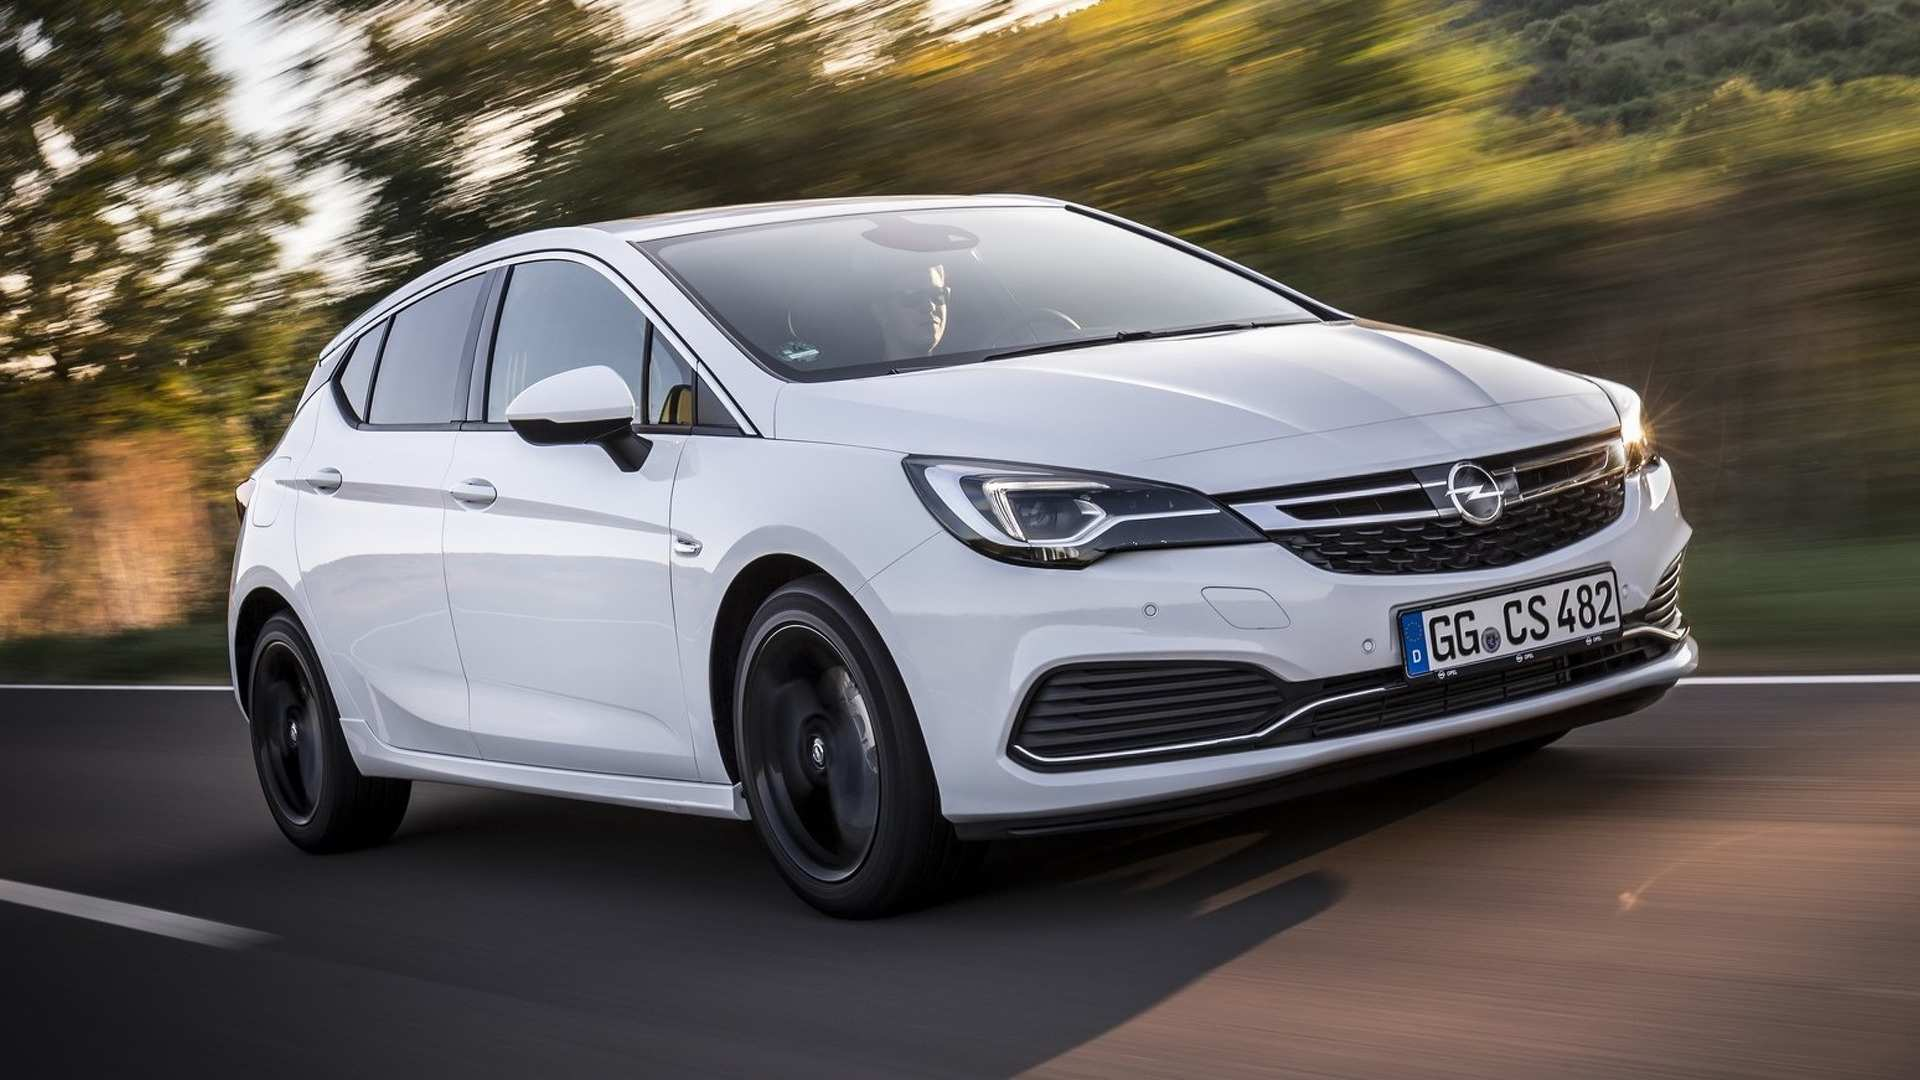 61 A Opel Opc 2019 Picture